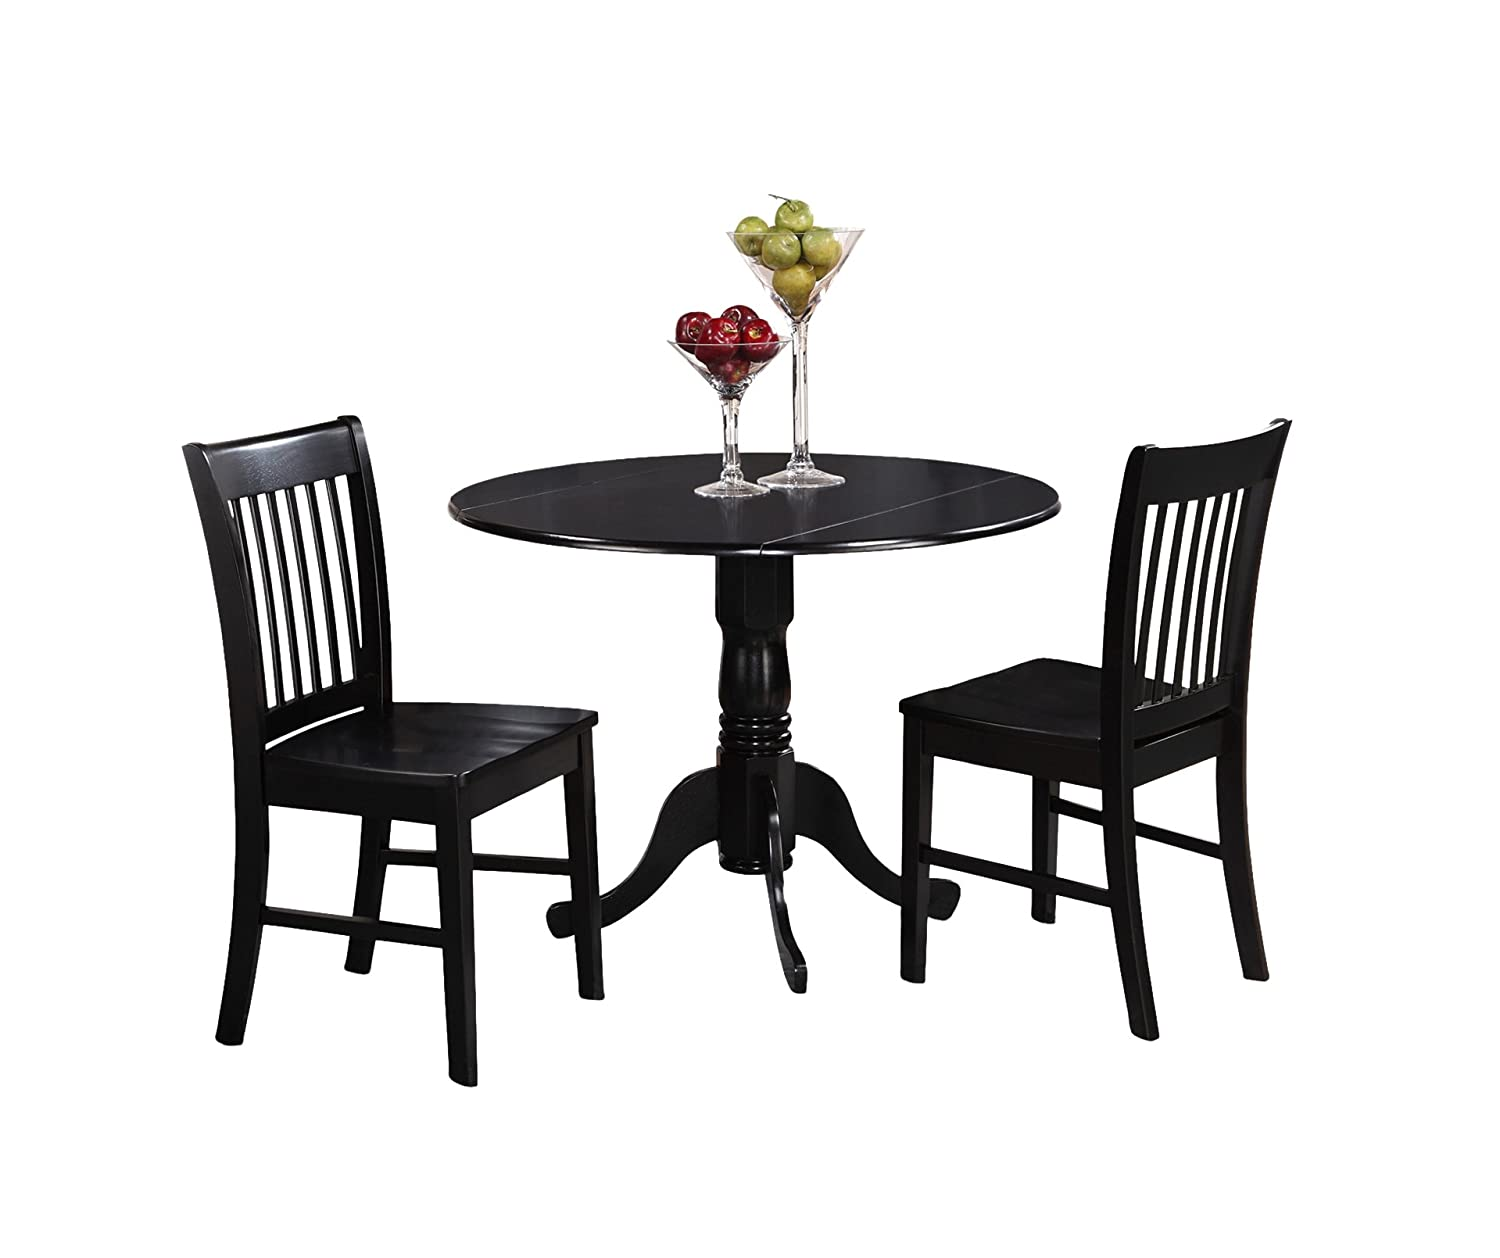 East West Furniture DLNO3-BLK-W 3-Piece Kitchen Table and Chairs Set, Black Finish